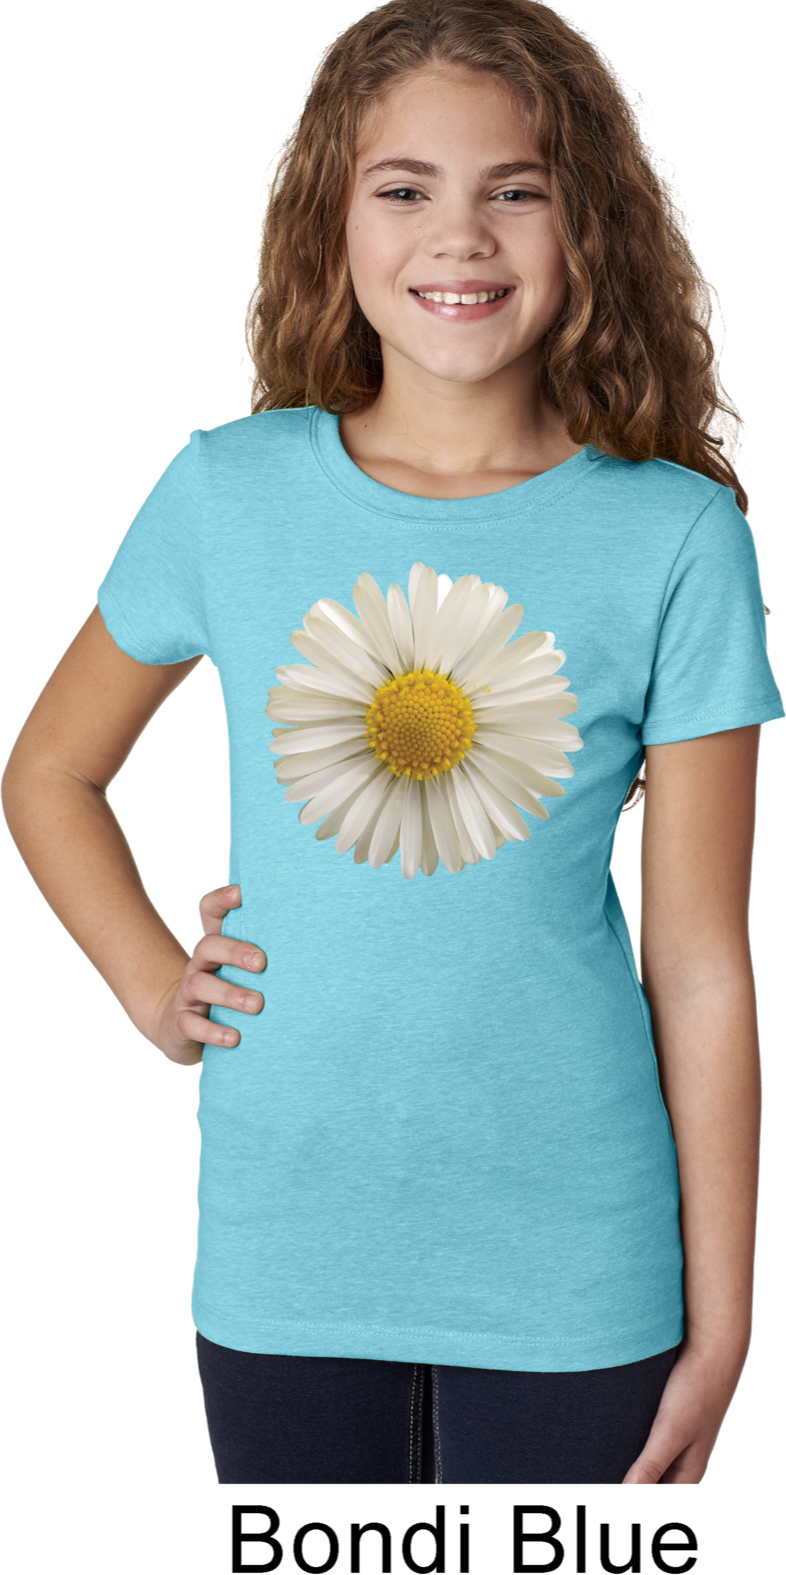 Girls Shirt White Daisy Tee T Shirt White Daisy Kids Shirts